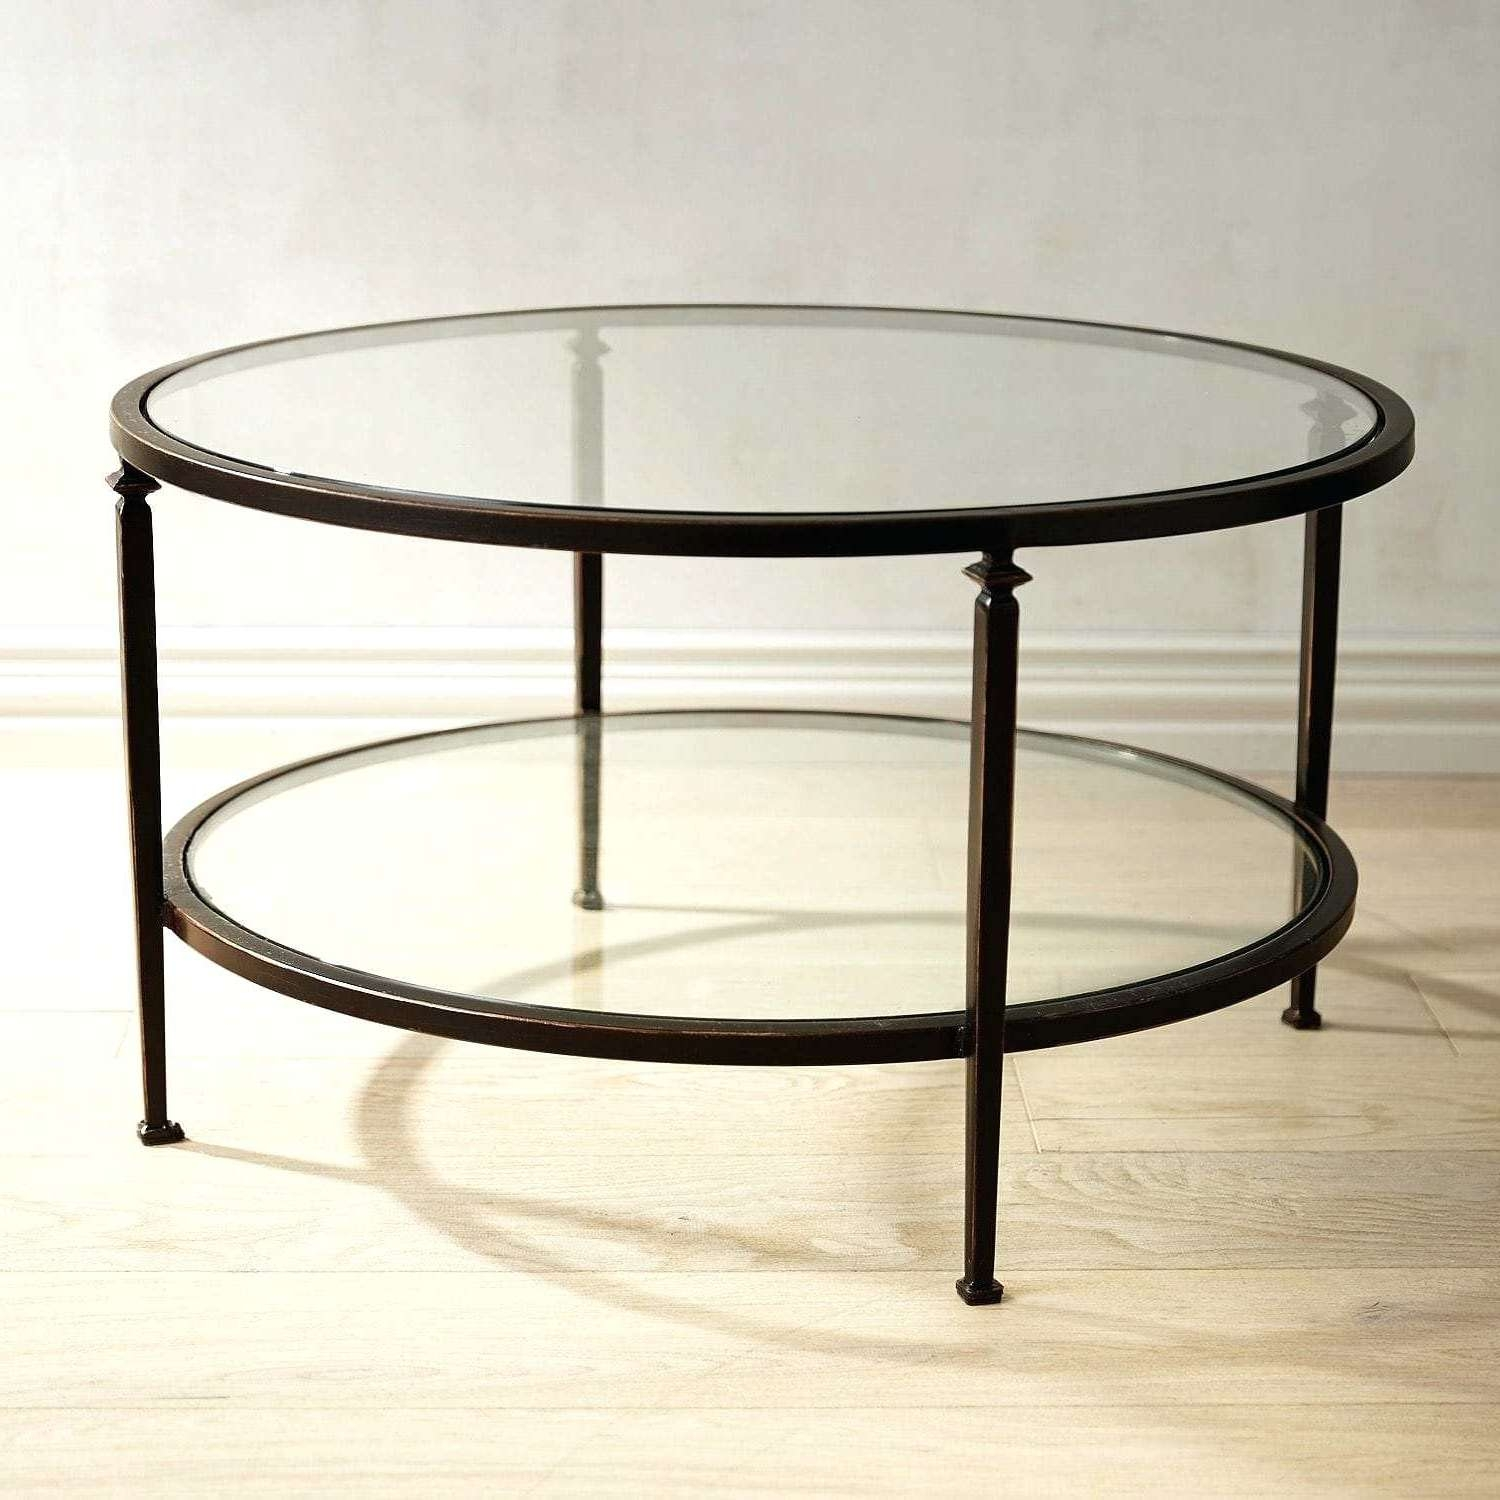 Glass Coffee Tables Nz: Round Coffee Table Nz